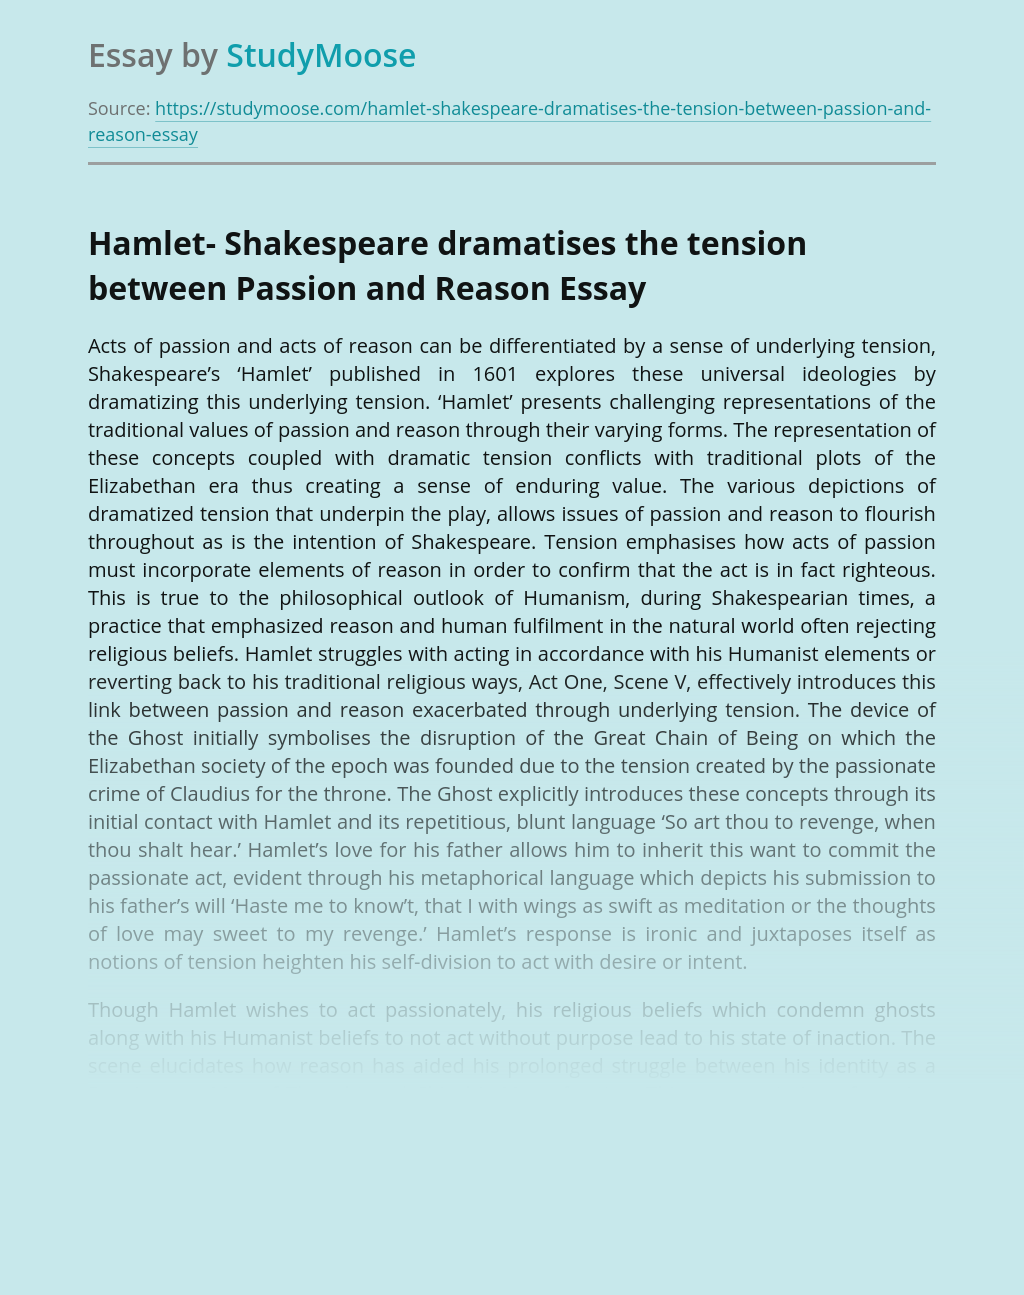 Hamlet- Shakespeare dramatises the tension between Passion and Reason